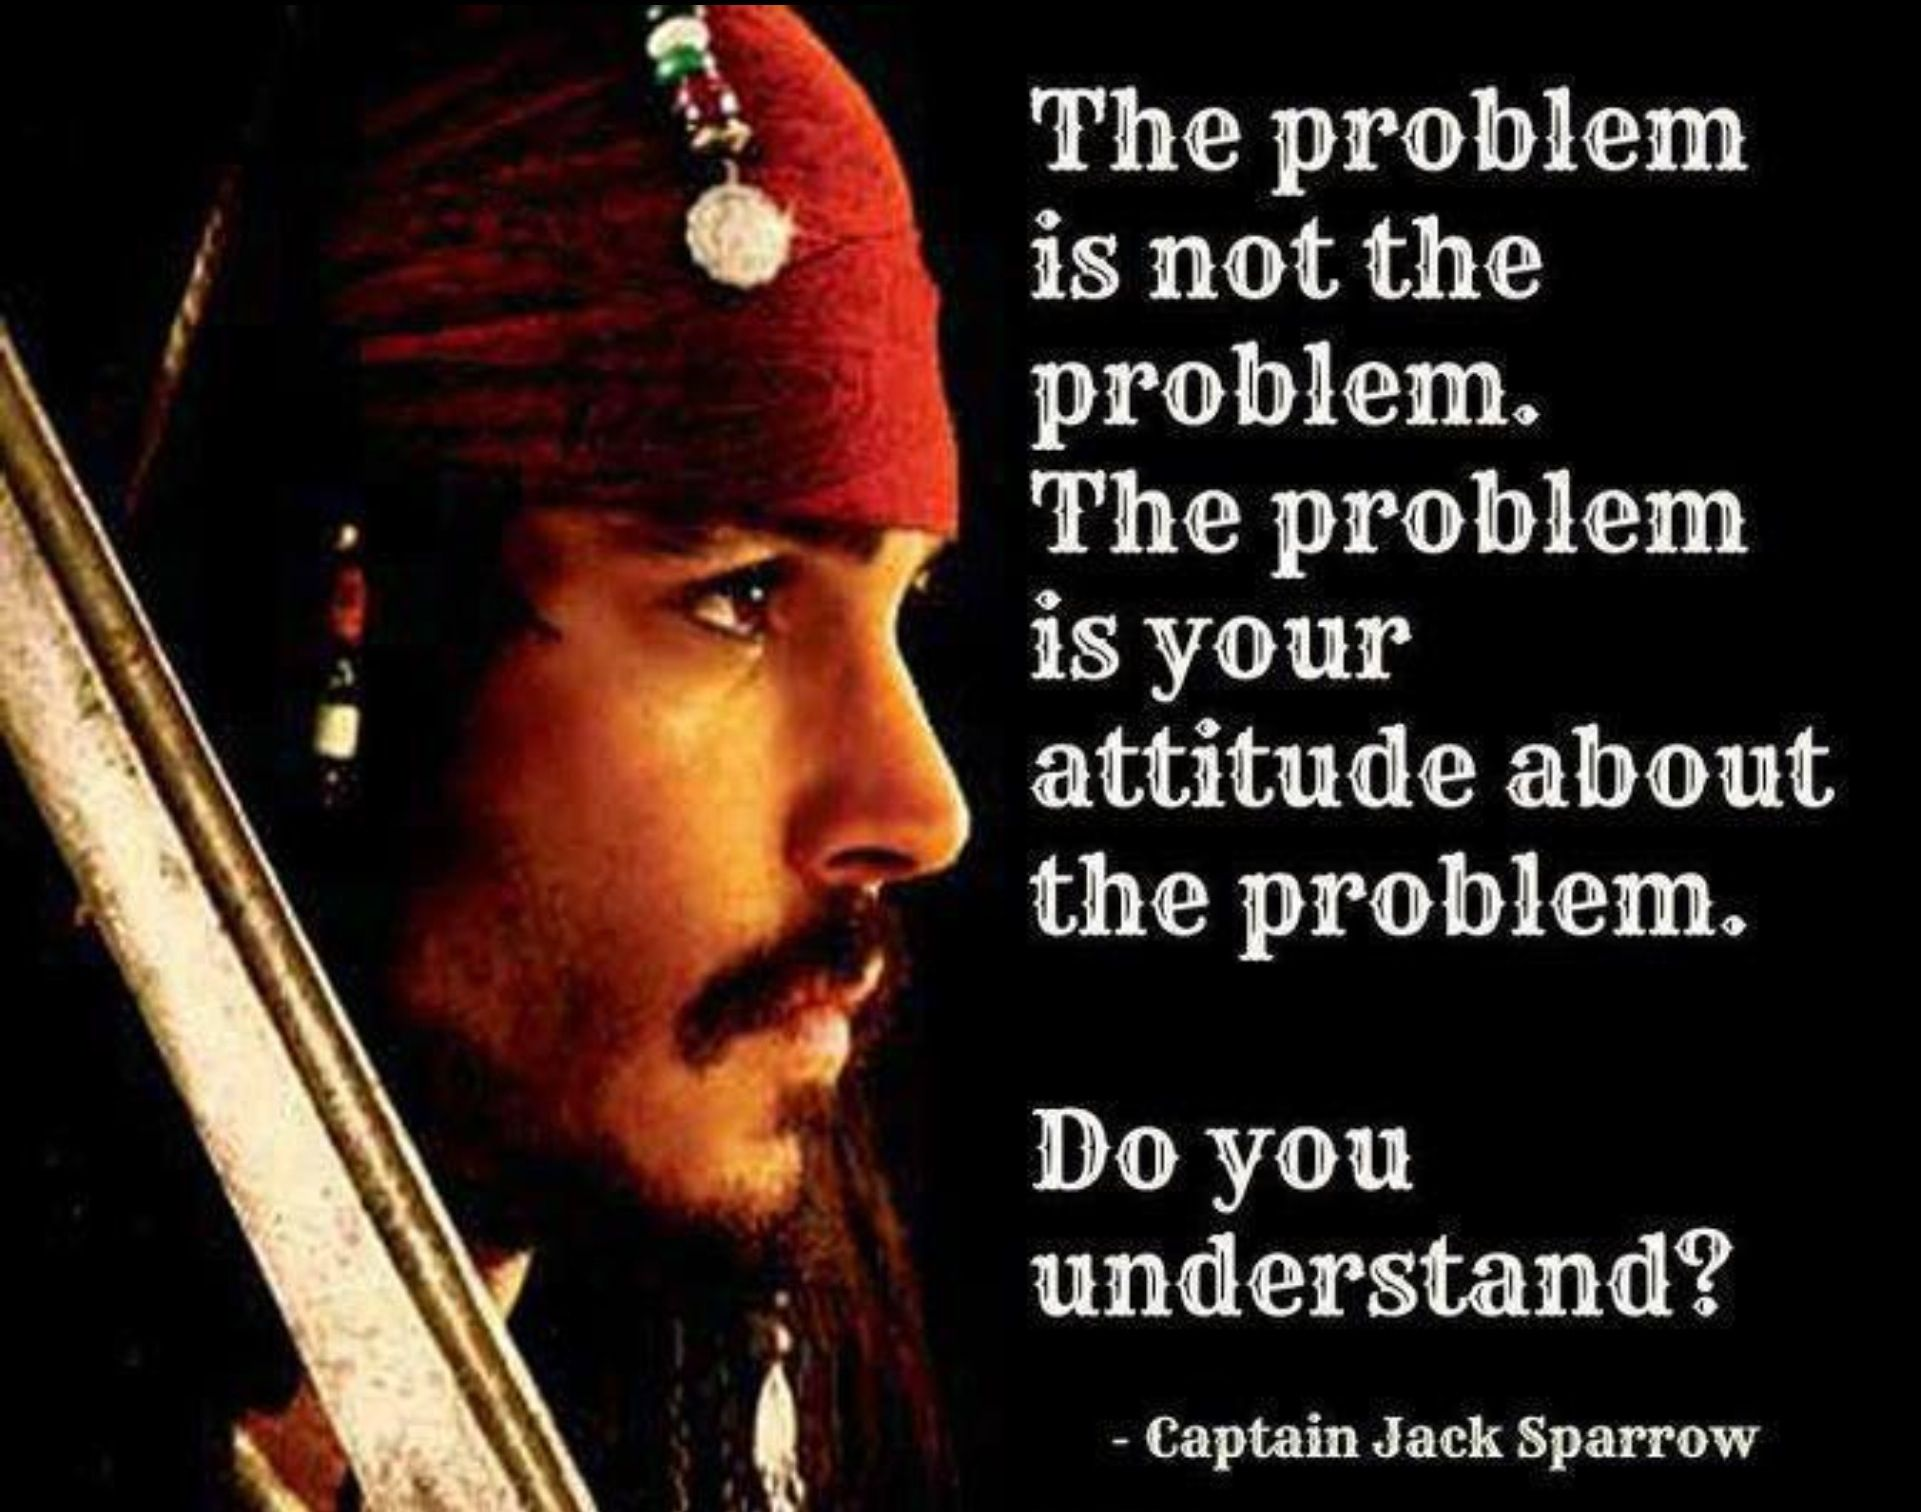 Captain Jack Sparrow Quotes Captain Jack Sparrow  Quotes  Pinterest  Captain Jack Sparrow